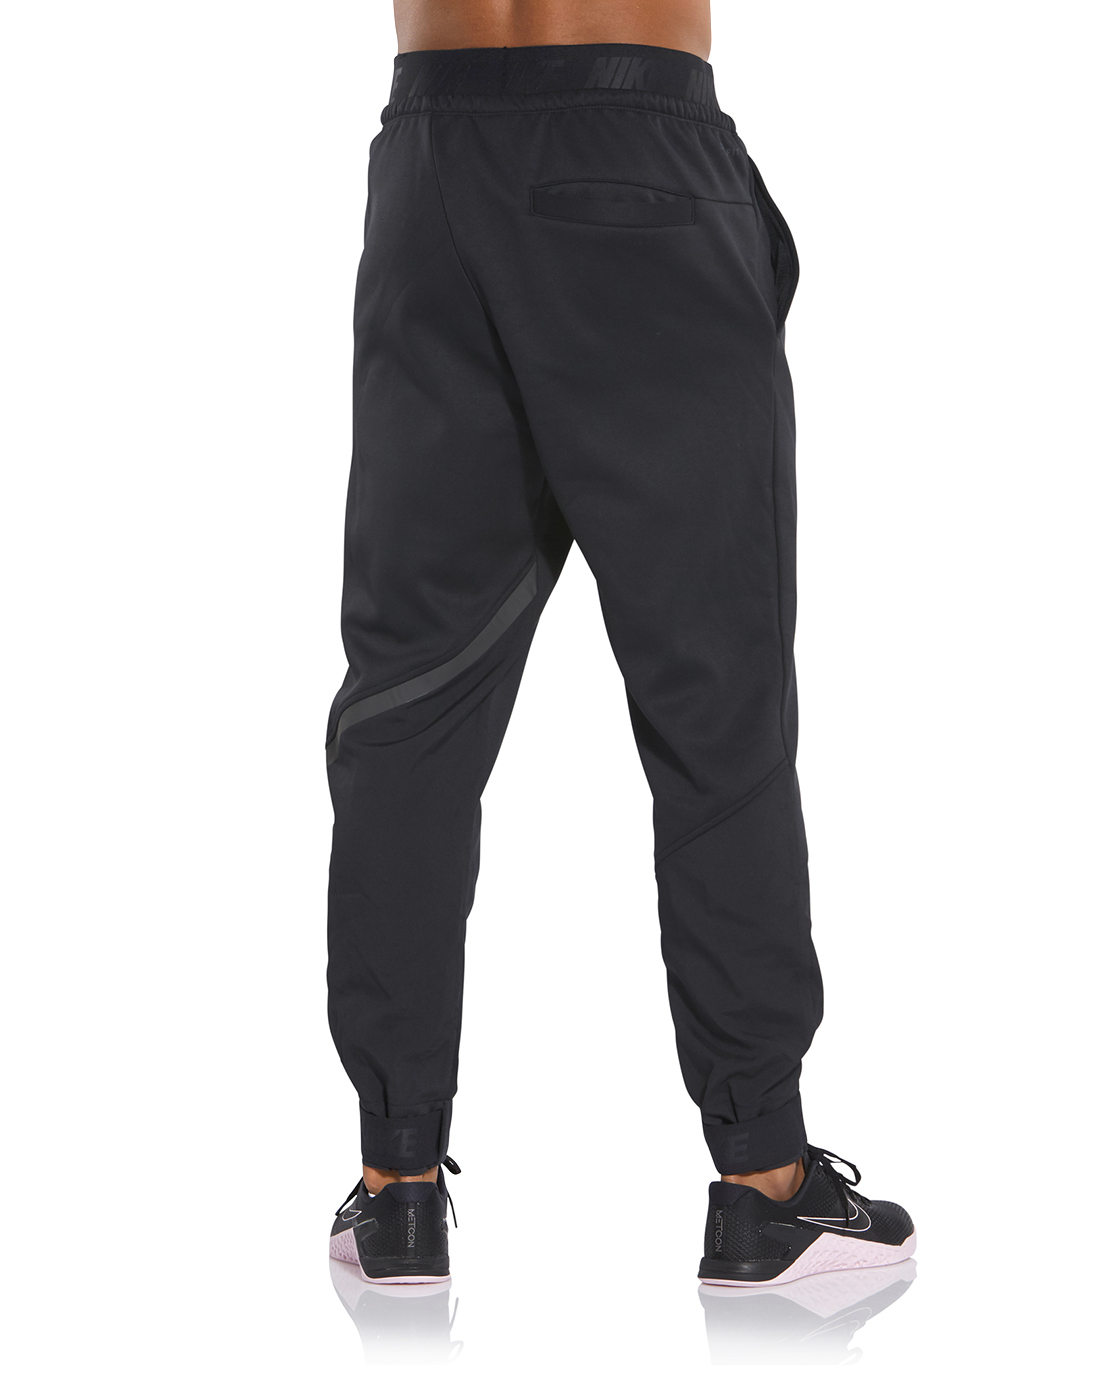 47dcf0436fdd3 Men's Black Nike Therma Gym Track Bottoms | Life Style Sports